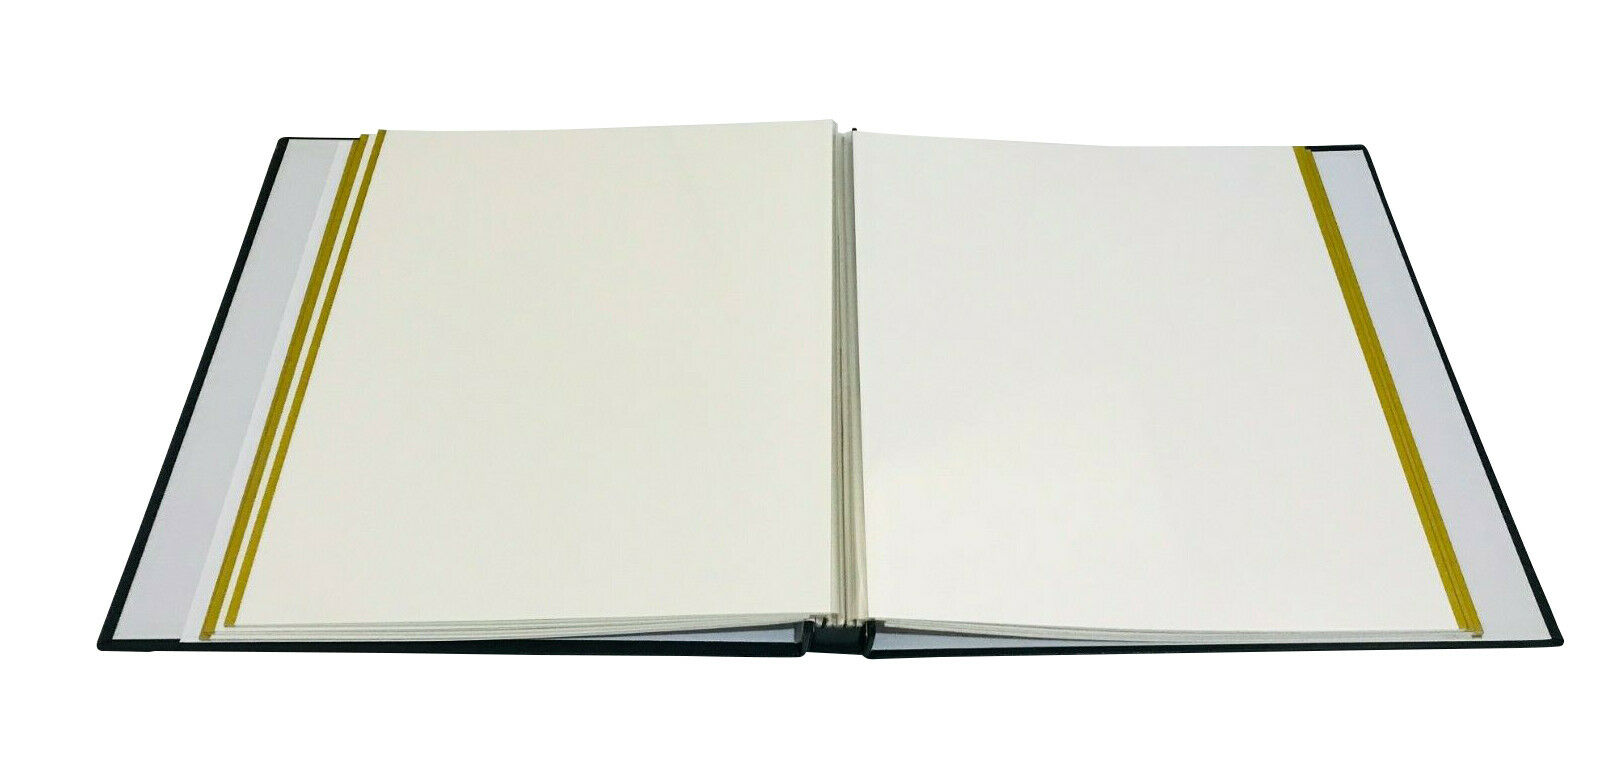 Large Self Adhesive Photo Album Hold Various Sized Picture Up to A4 WHITE